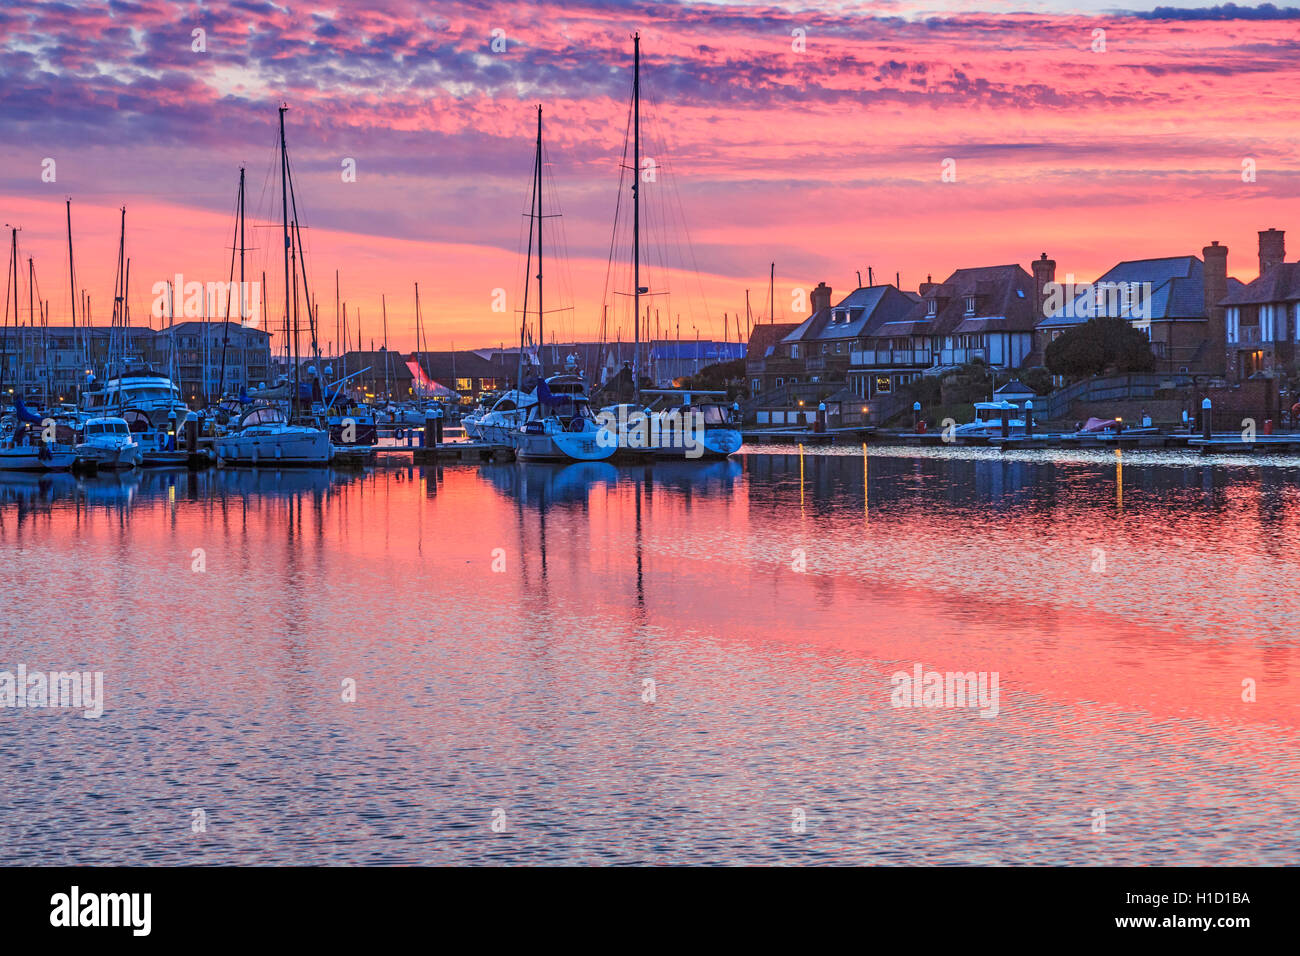 Sovereign Harbour Eastbourne at dusk Sunset - Stock Image